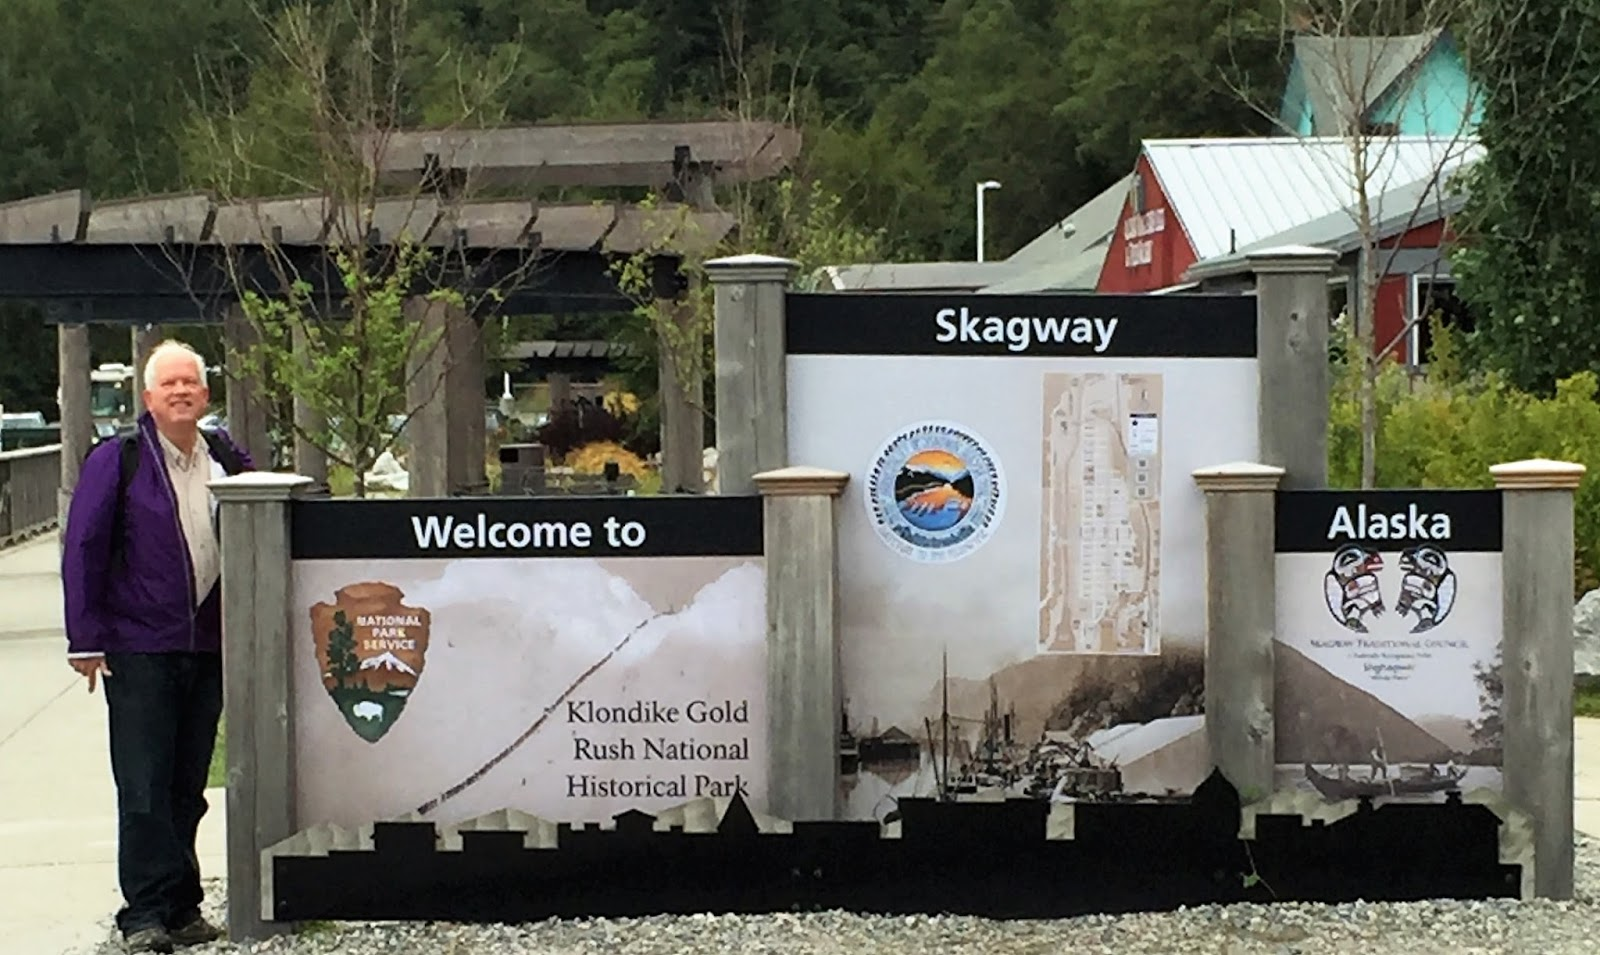 skagway personals Don't forget to upload your personal photo to your free, skagway personals ad today join the conversation and connect with us: facebook twitter linkedin.